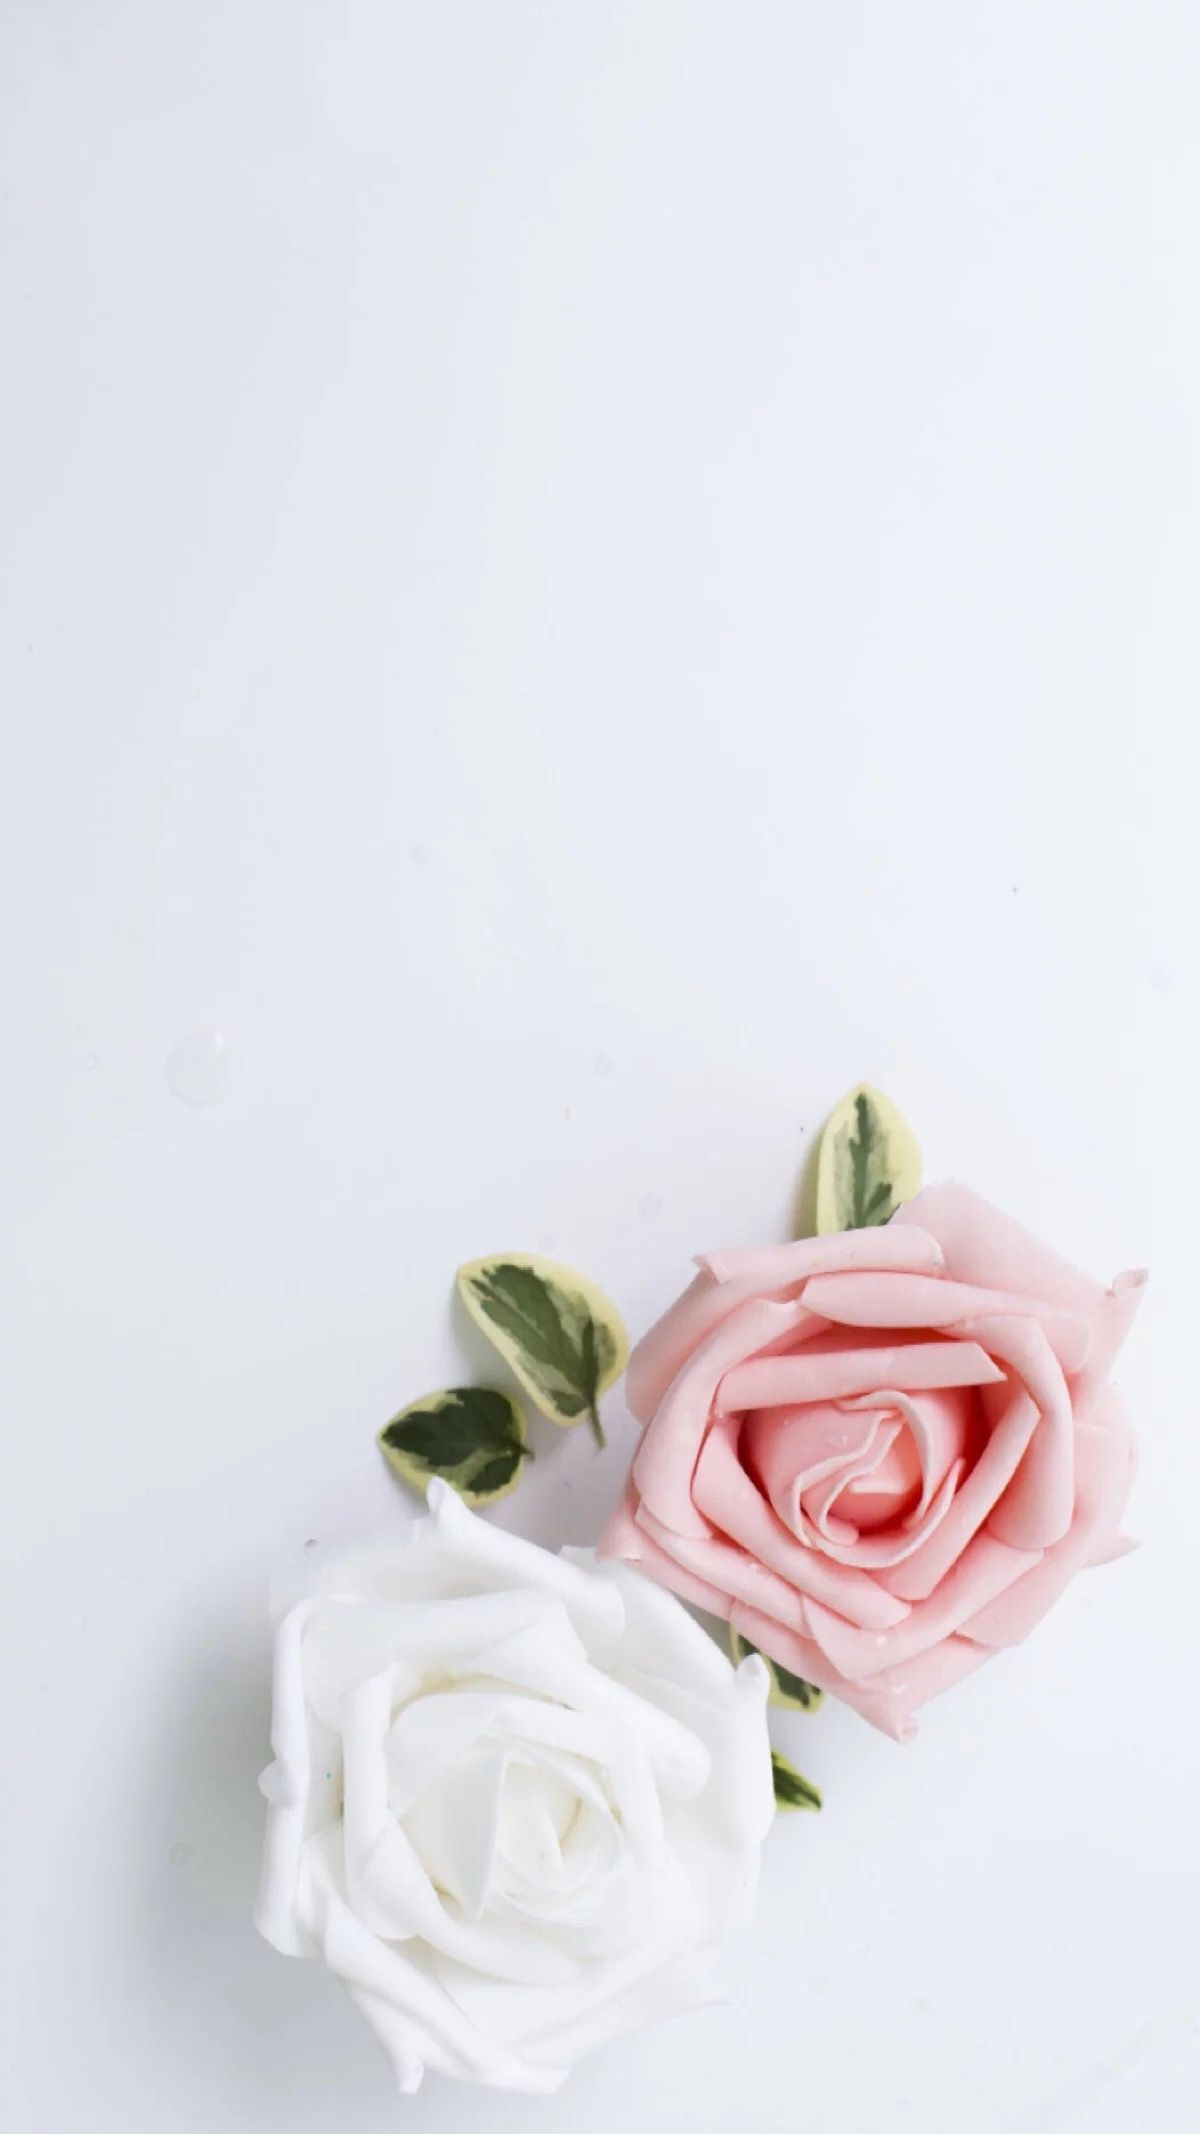 Aesthetic White Wallpapers Top Free Aesthetic White Backgrounds Wallpaperaccess In 2020 Nature Iphone Wallpaper Rose Wallpaper Cute Wallpapers